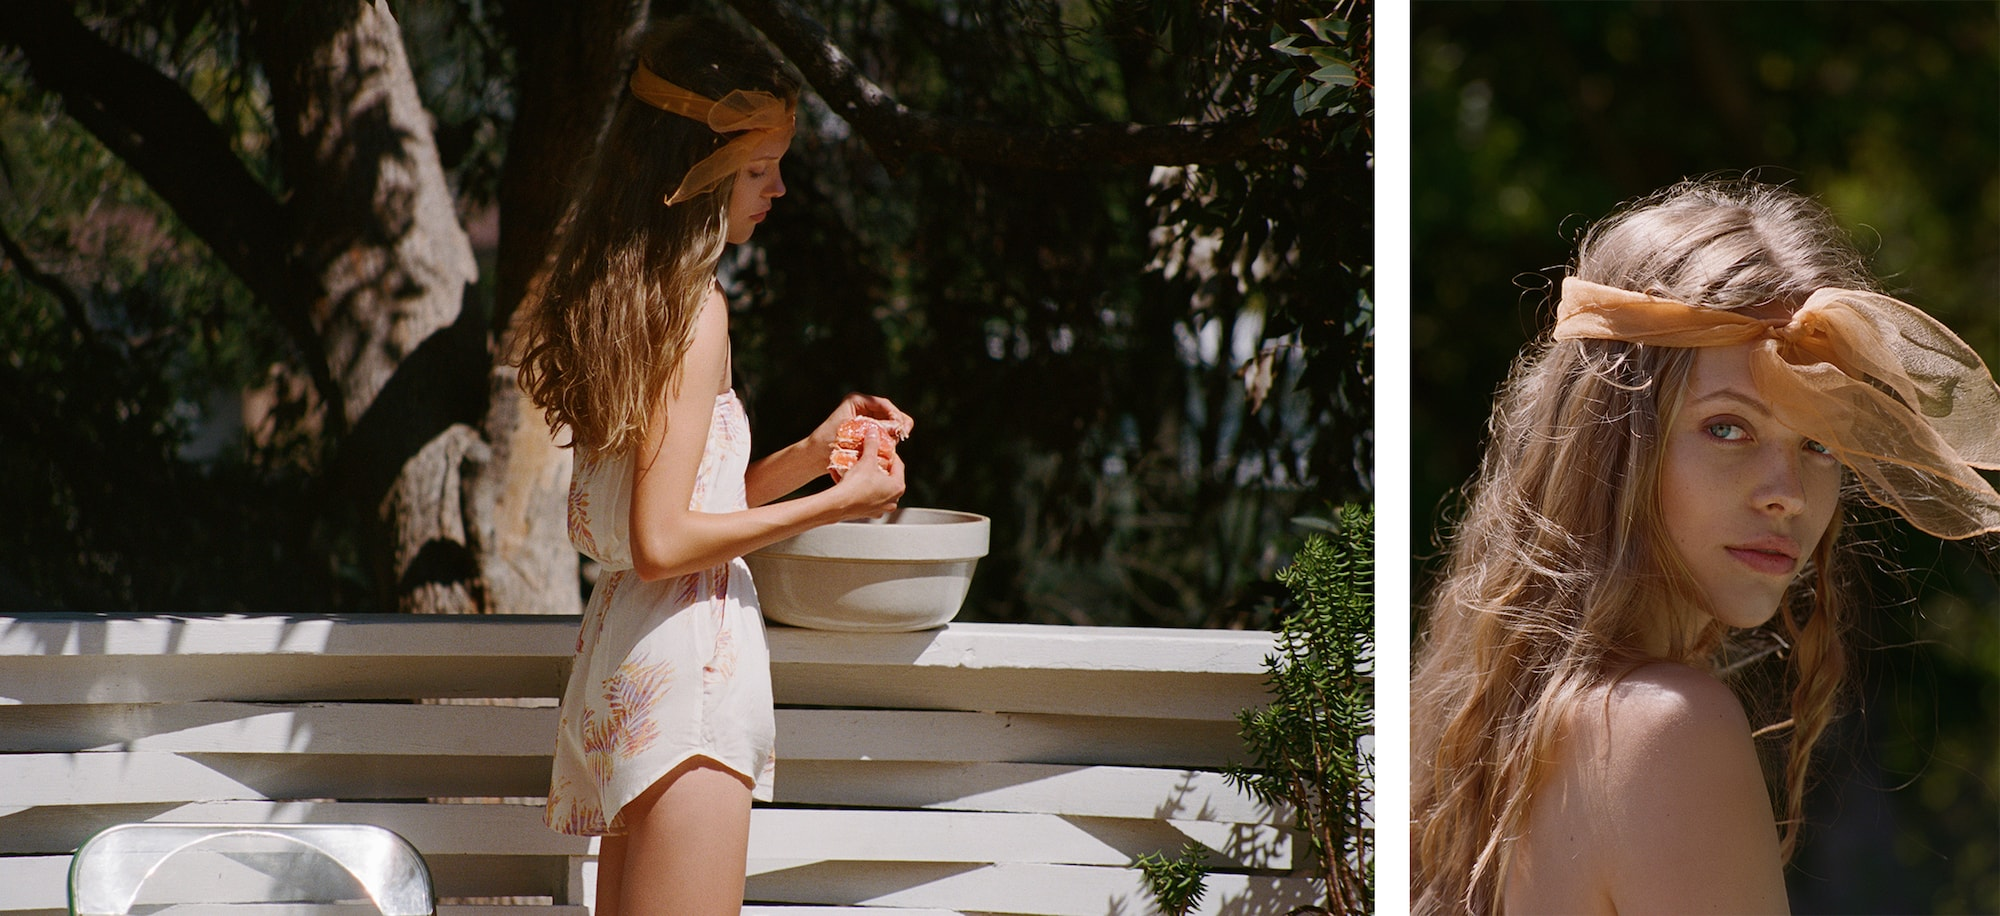 Spring 16 Lookbook by Purienne